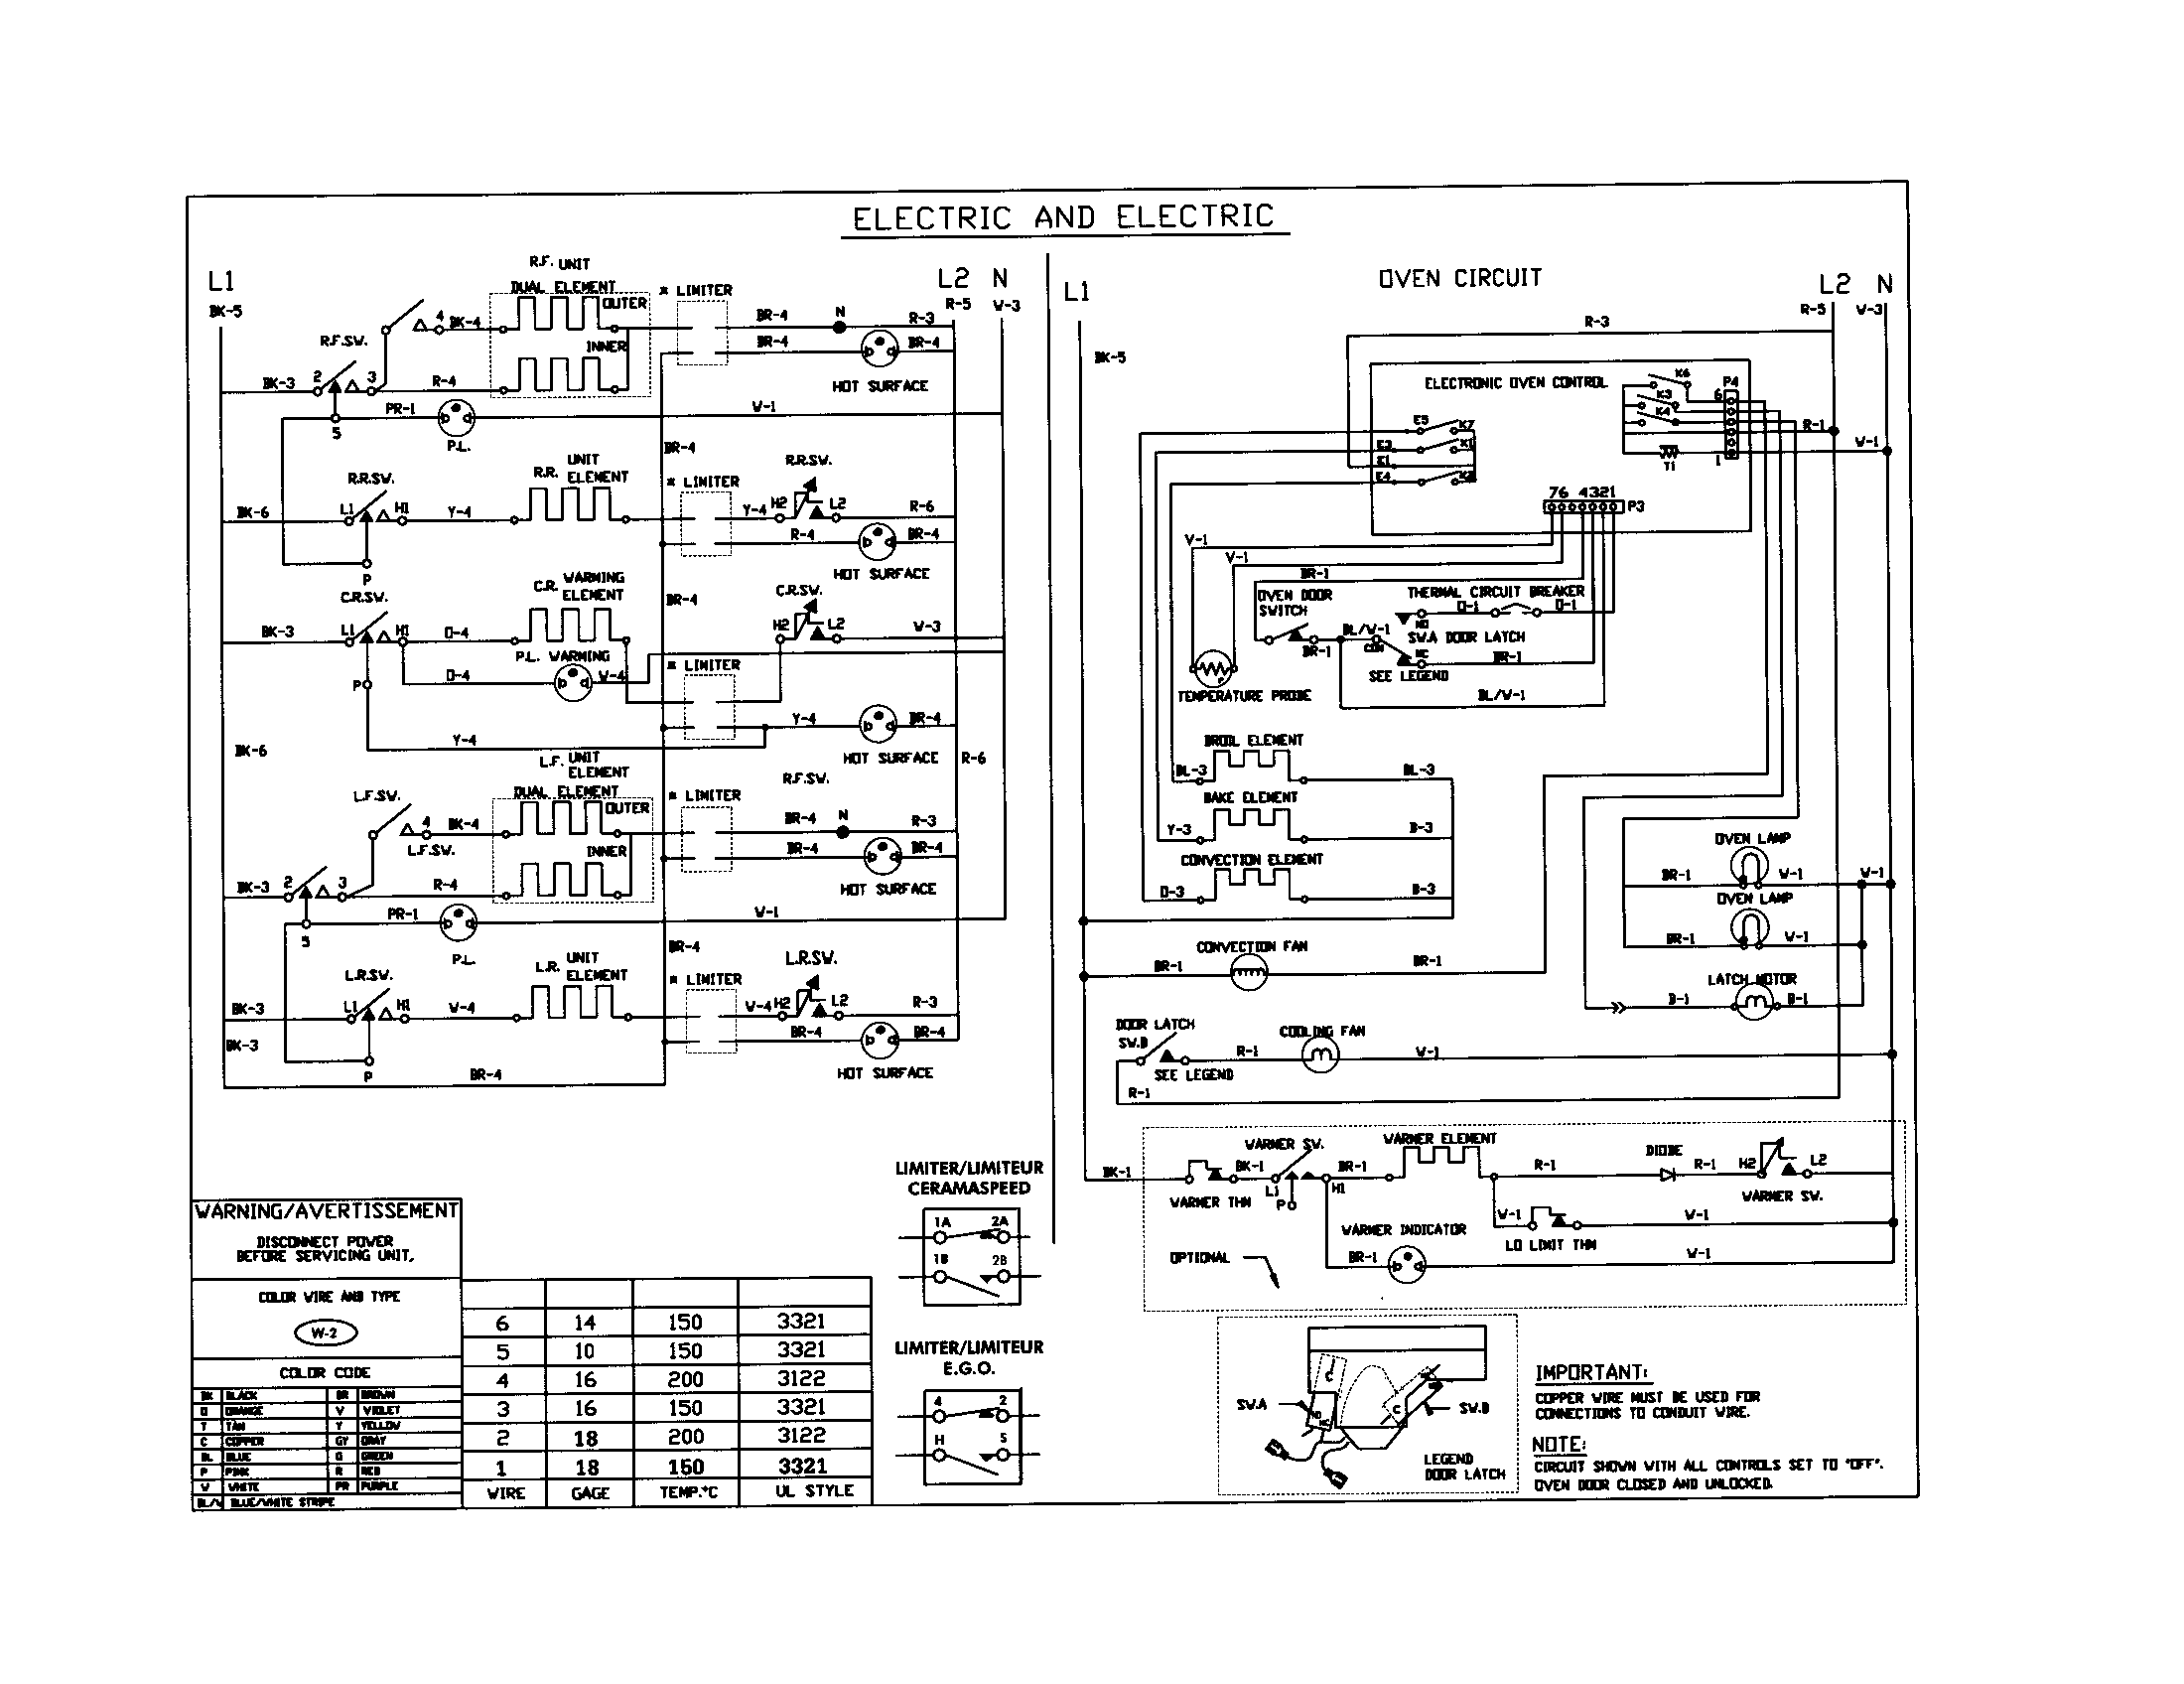 P0050376 00005?resize\=665%2C512 kenmore dryer model 11087872602 wiring diagram kenmore wiring  at gsmportal.co